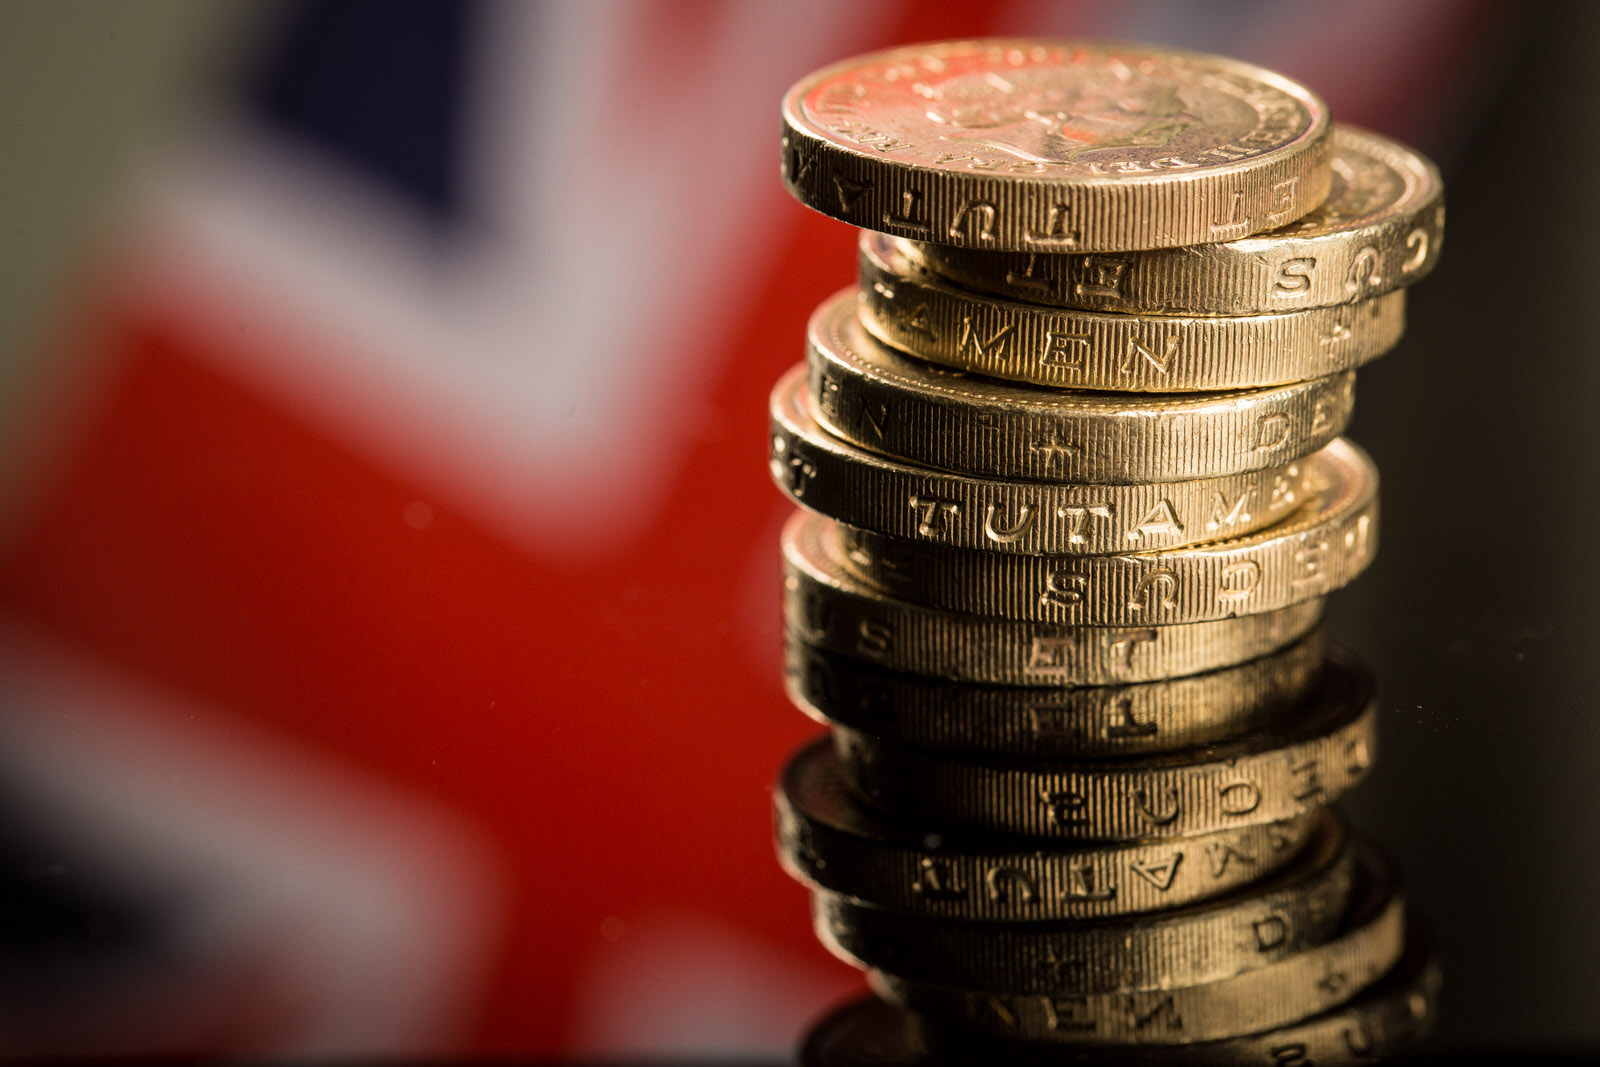 A stack of British one pound sterling coins stand in front of a British Union flag, also known as a Union Jack, in this arranged photograph in Guildford, U.K., on Monday, June 13, 2016. Sterling swung on Monday as anxiety about Britain's referendum on staying or leaving the European Union continued to build. Photographer: Jason Alden/Bloomberg